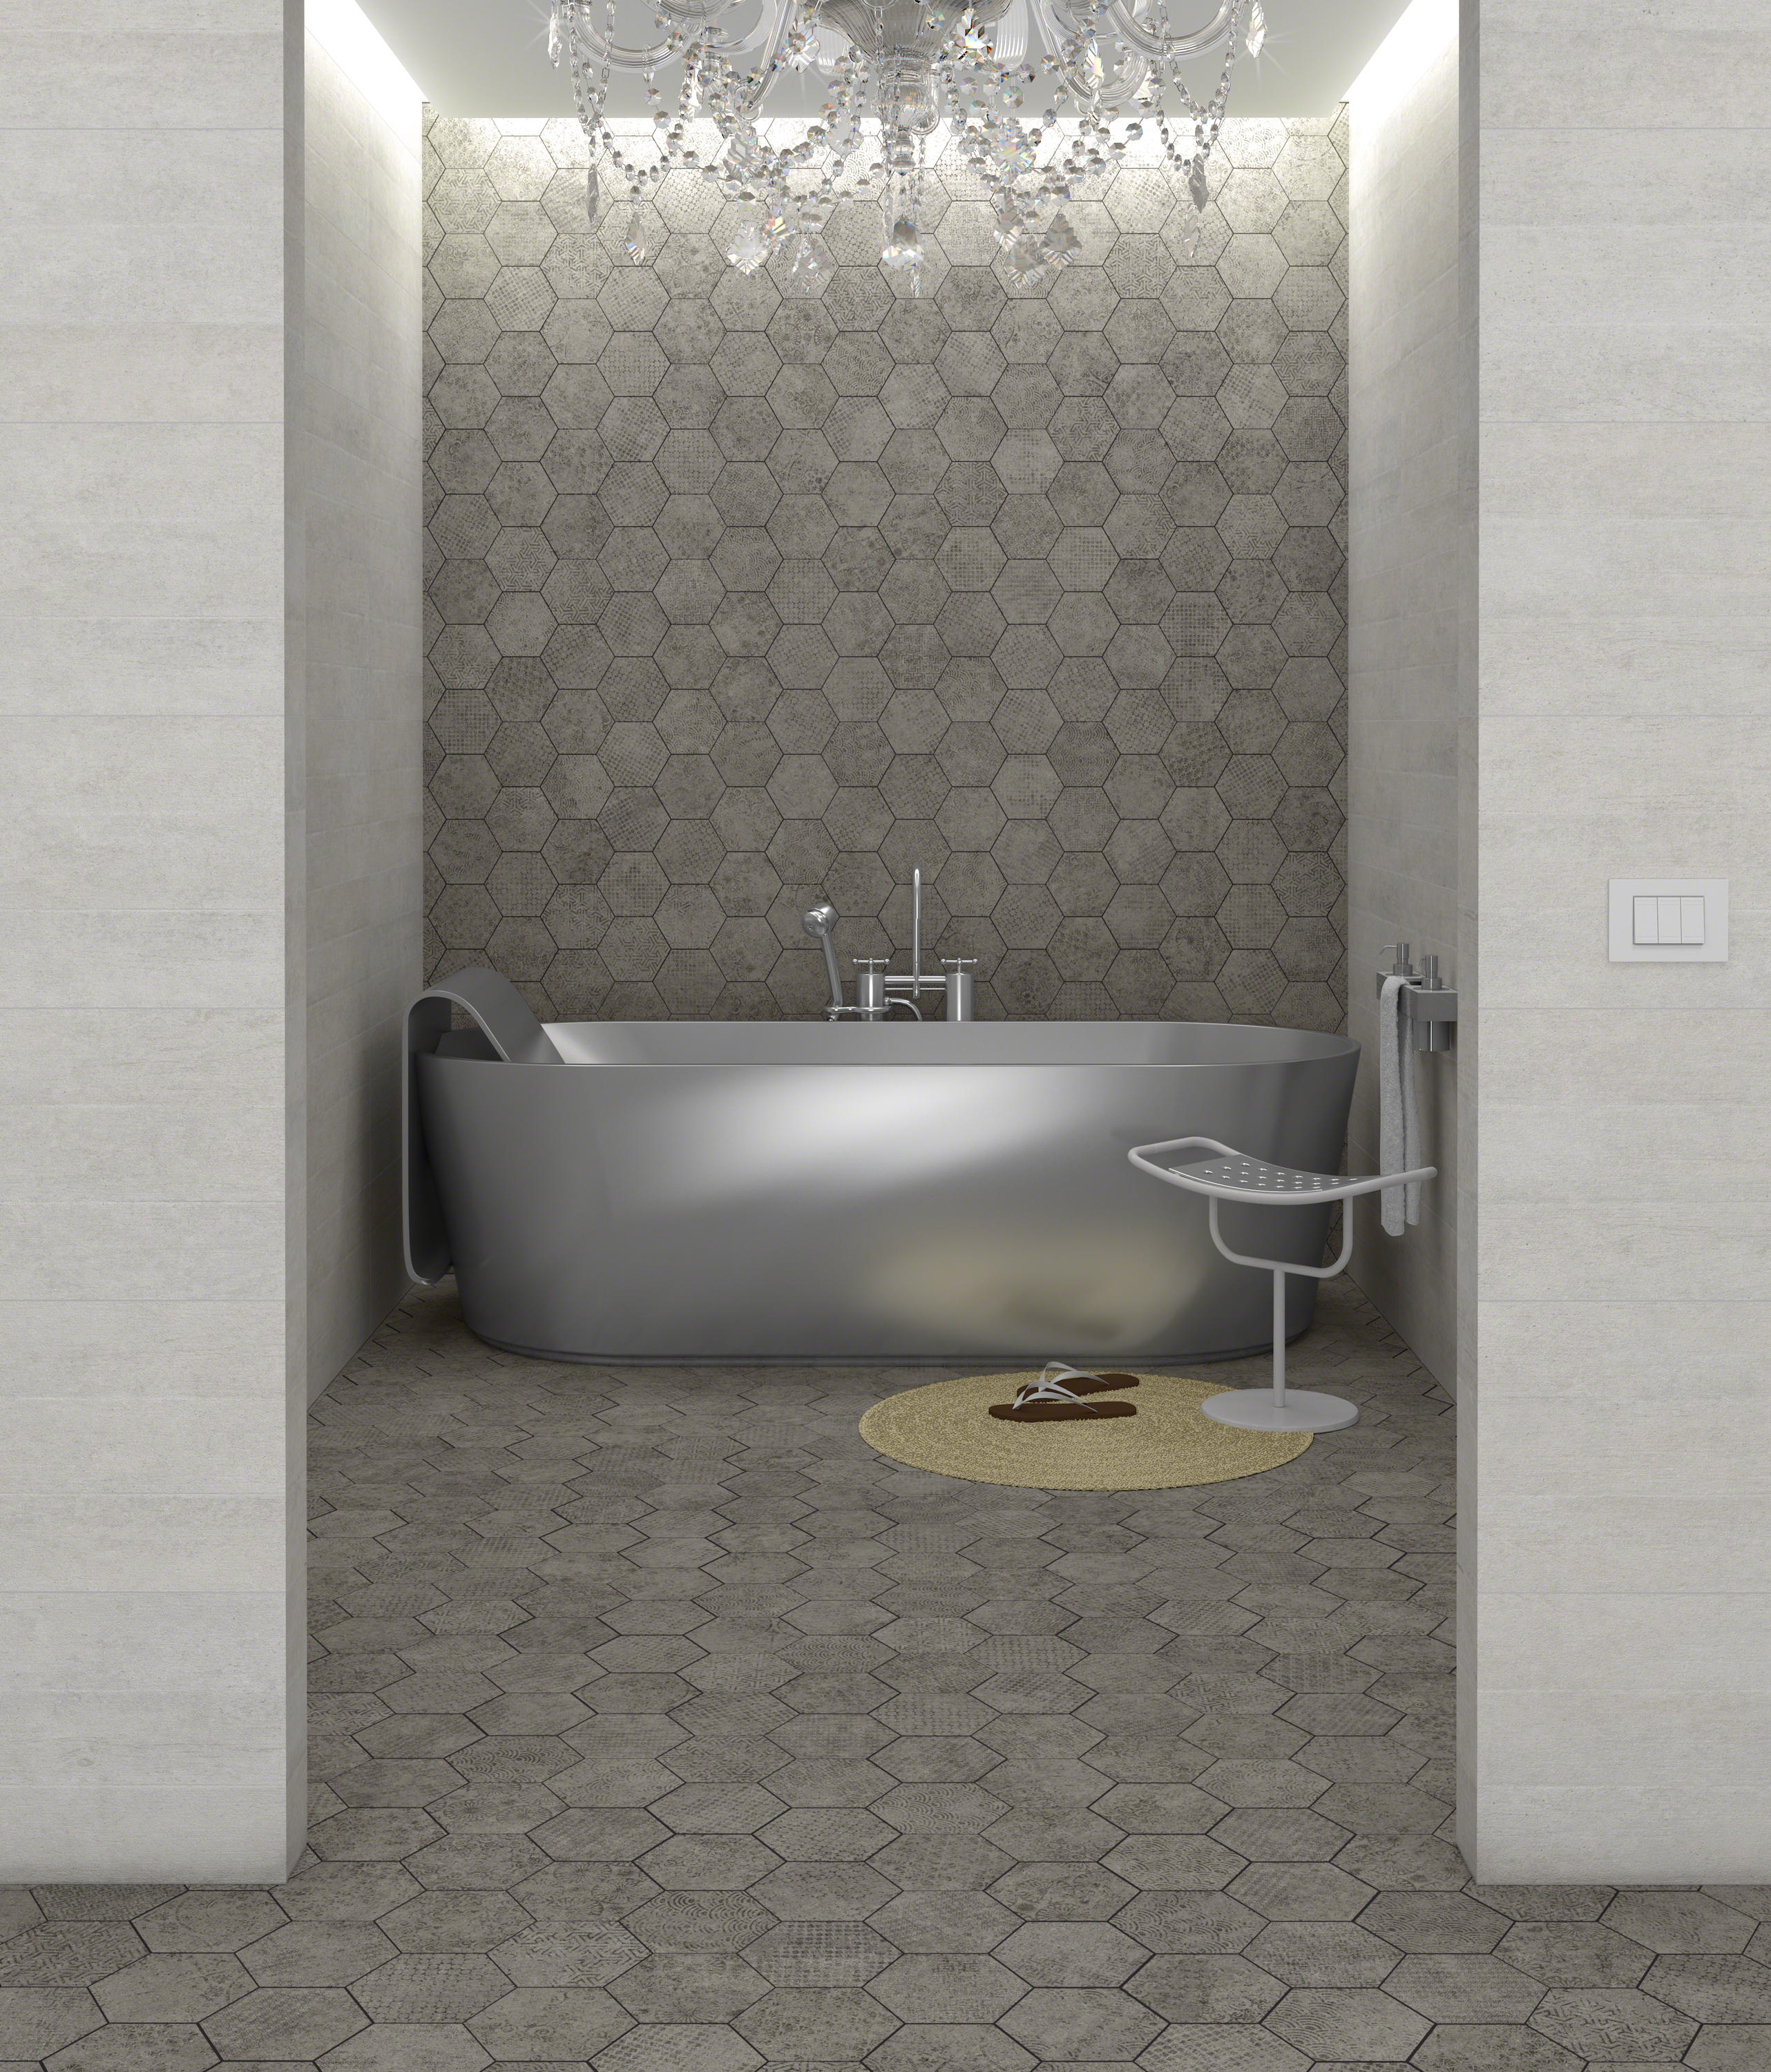 Cerco spr grafito floor tiles from vives cer mica - Vives ceramica ...